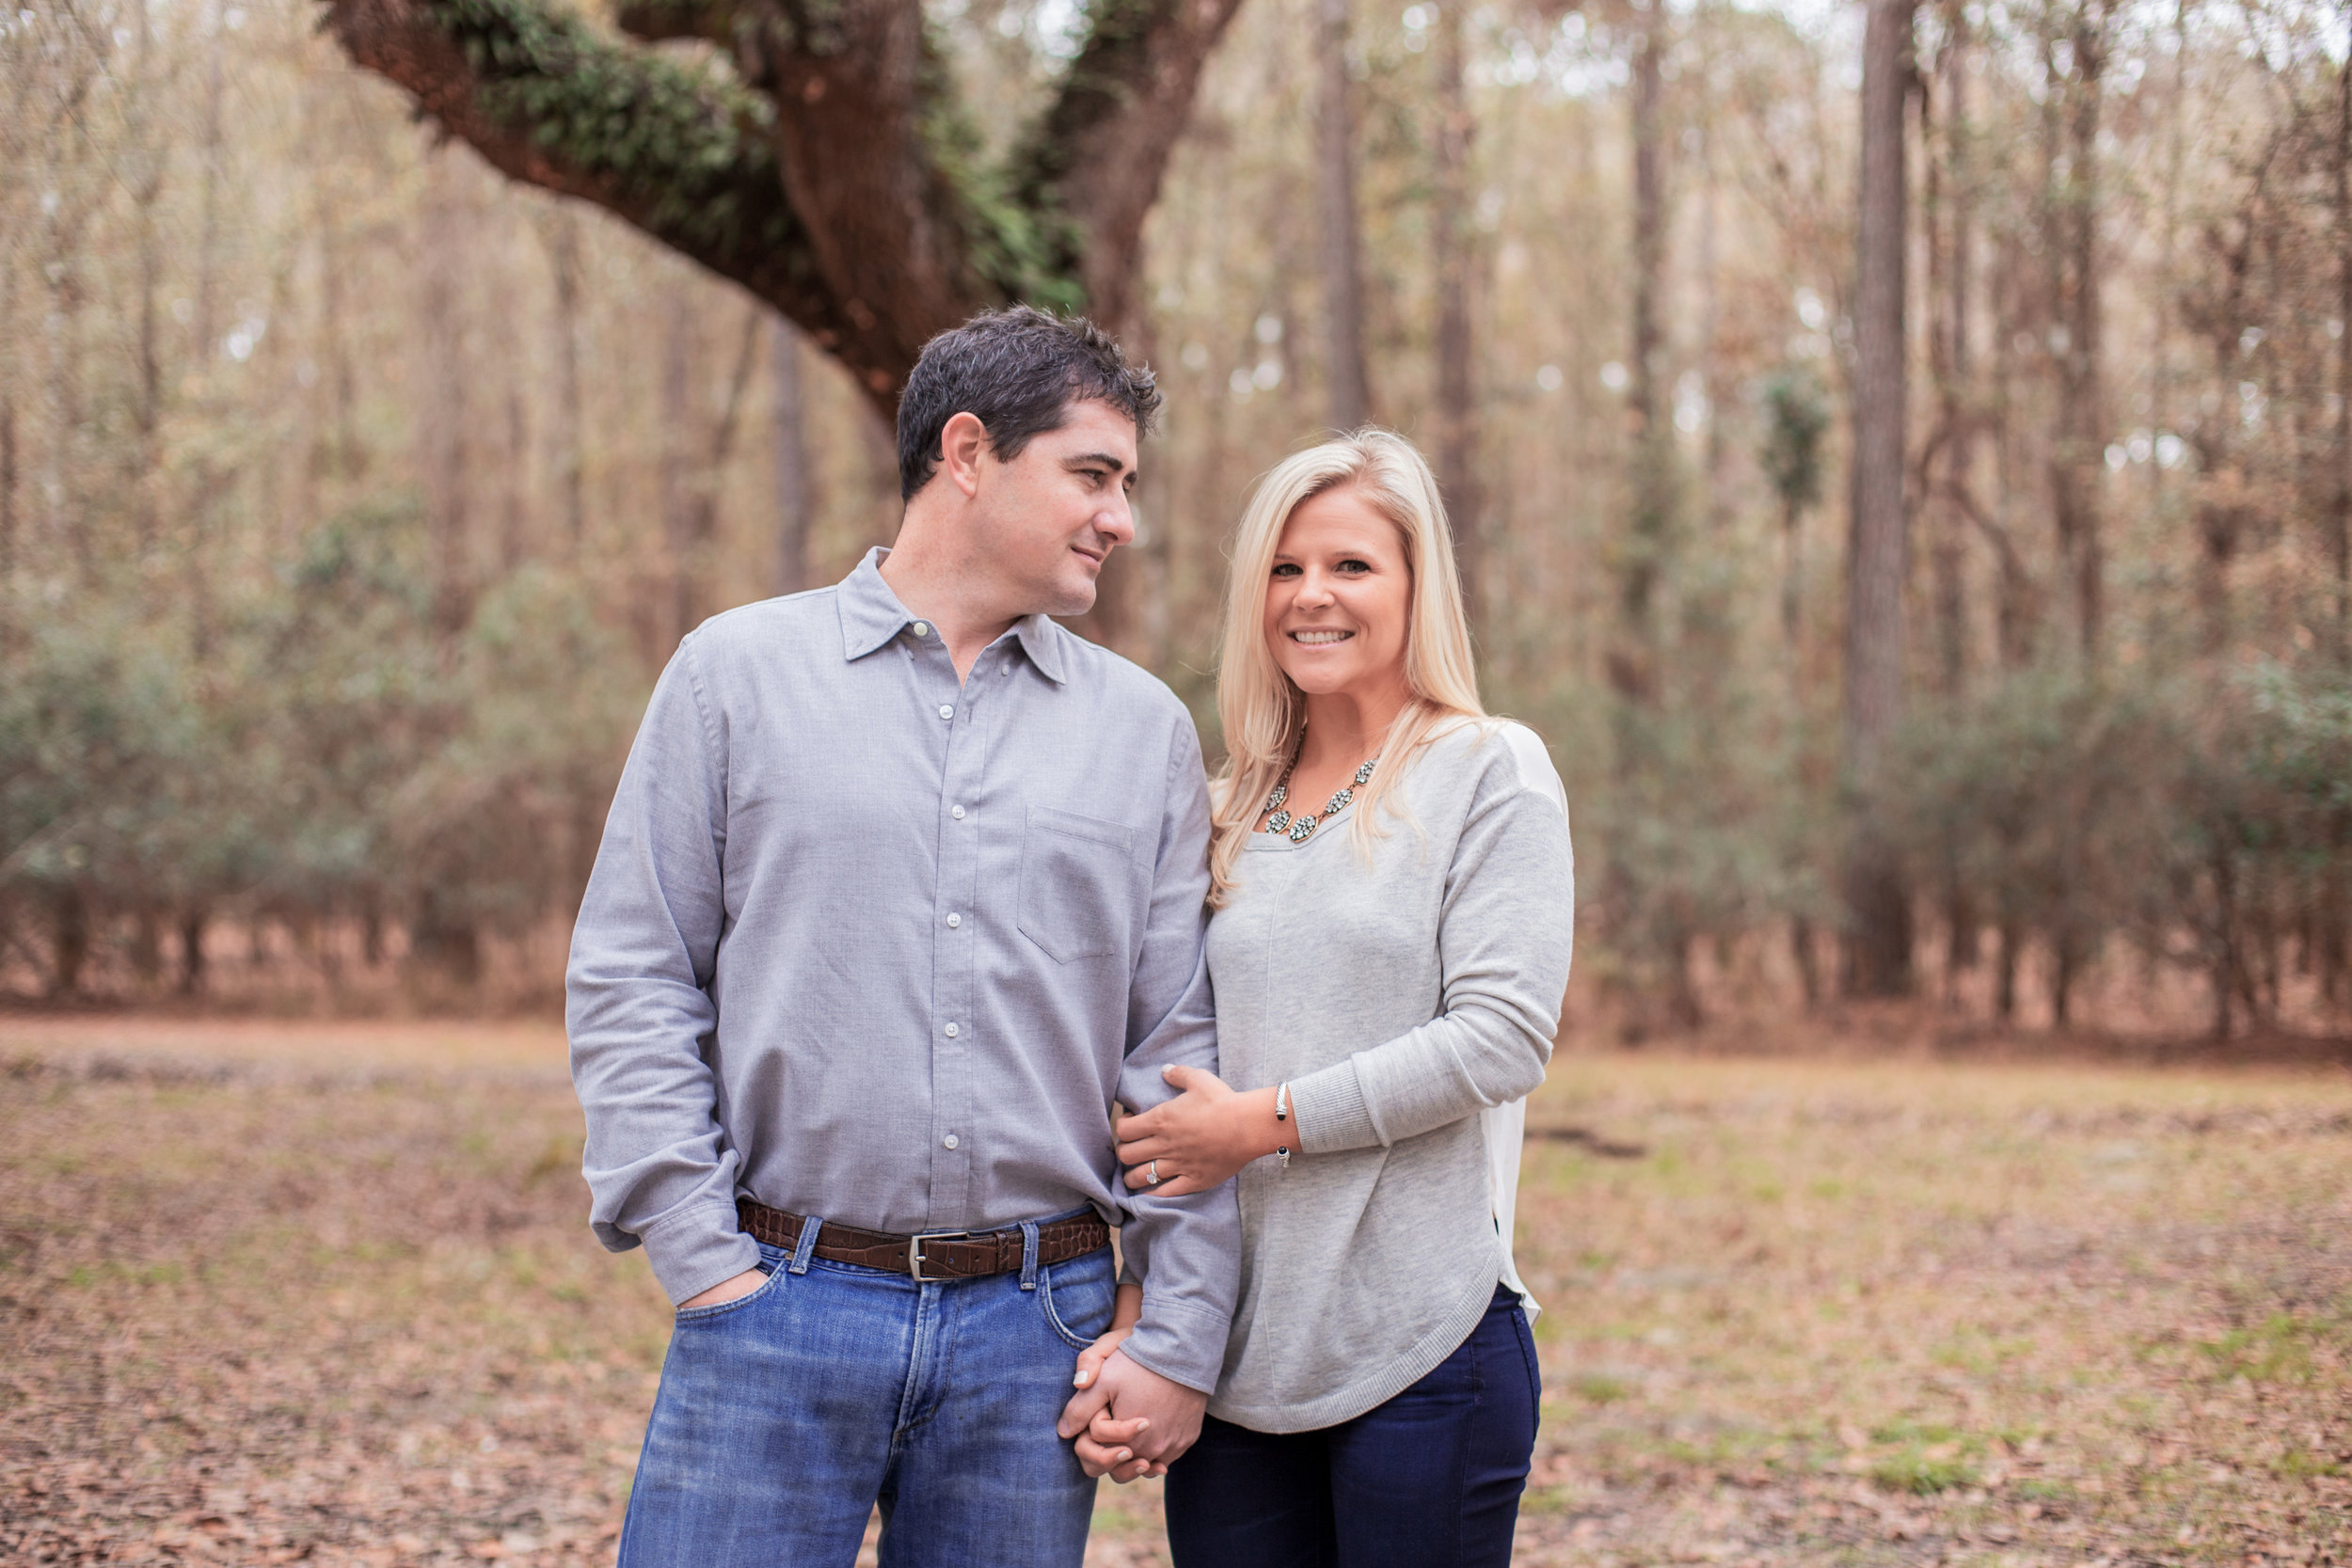 wormsloe-park-engagement-session-man-and-woman-autumn _MG_9727.jpg